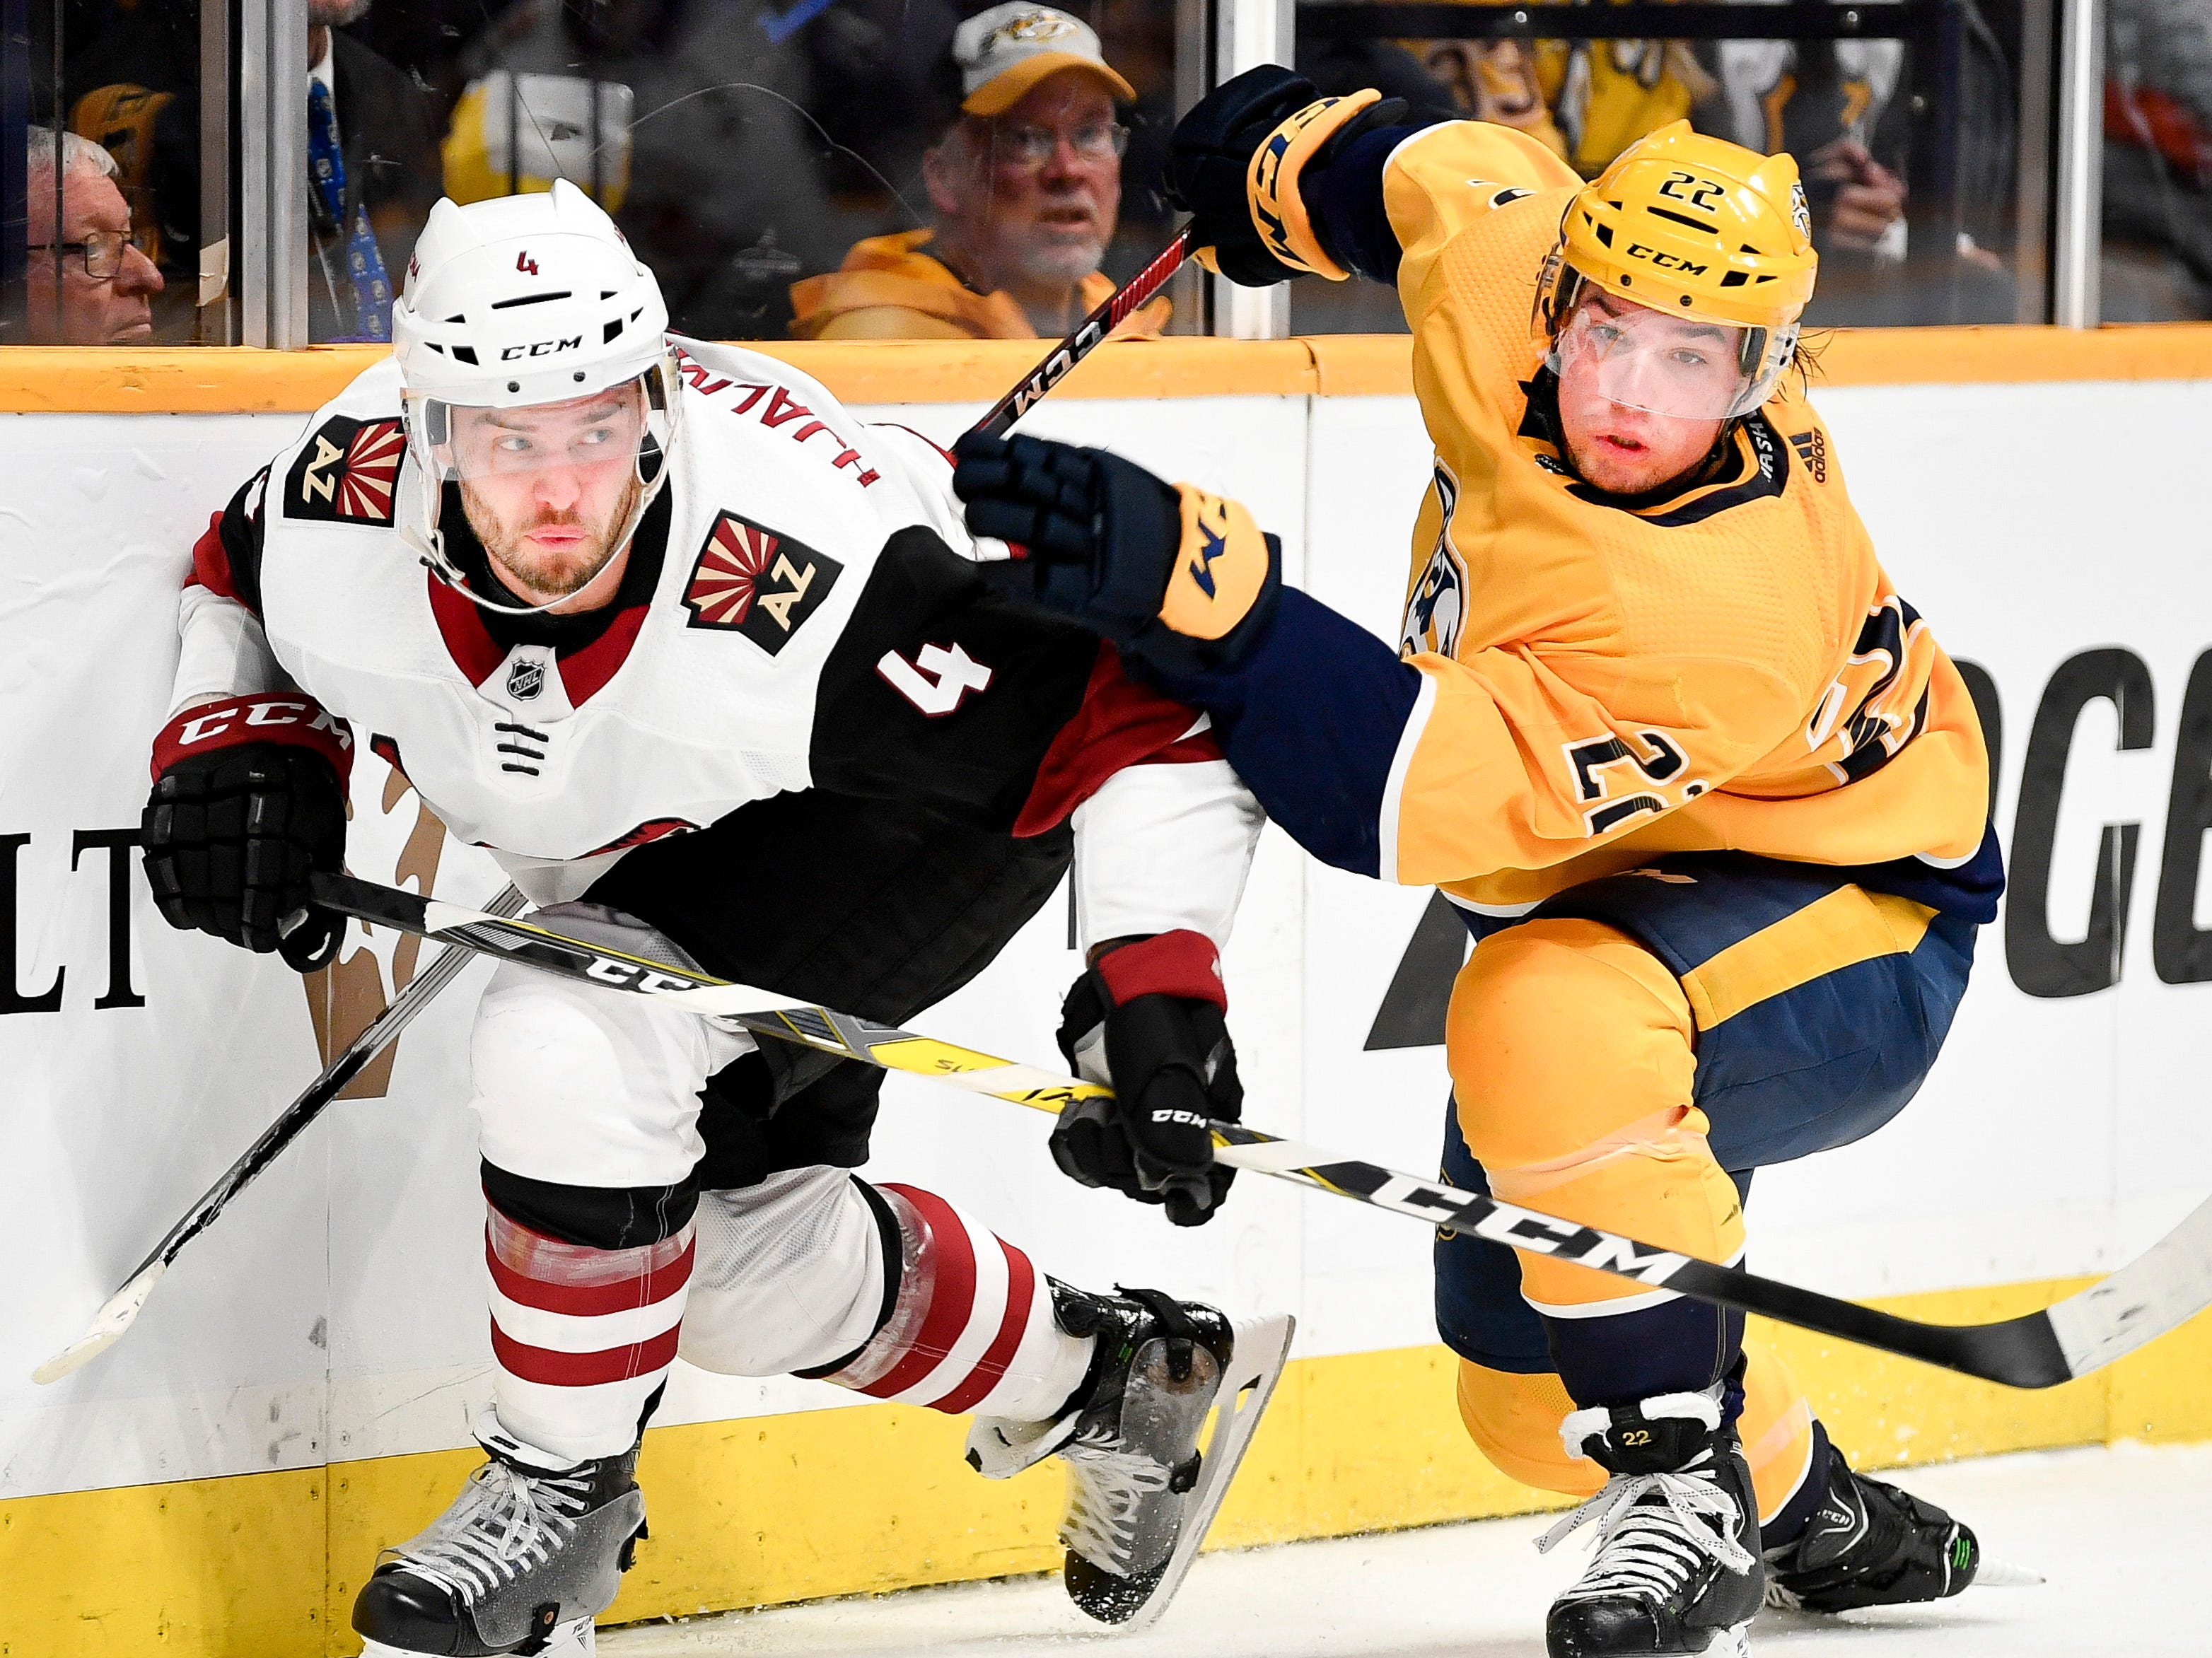 Arizona Coyotes defenseman Niklas Hjalmarsson (4) and Nashville Predators left wing Kevin Fiala (22) chase the puck during the first period at Bridgestone Arena in Nashville, Tenn., Tuesday, Feb. 5, 2019.